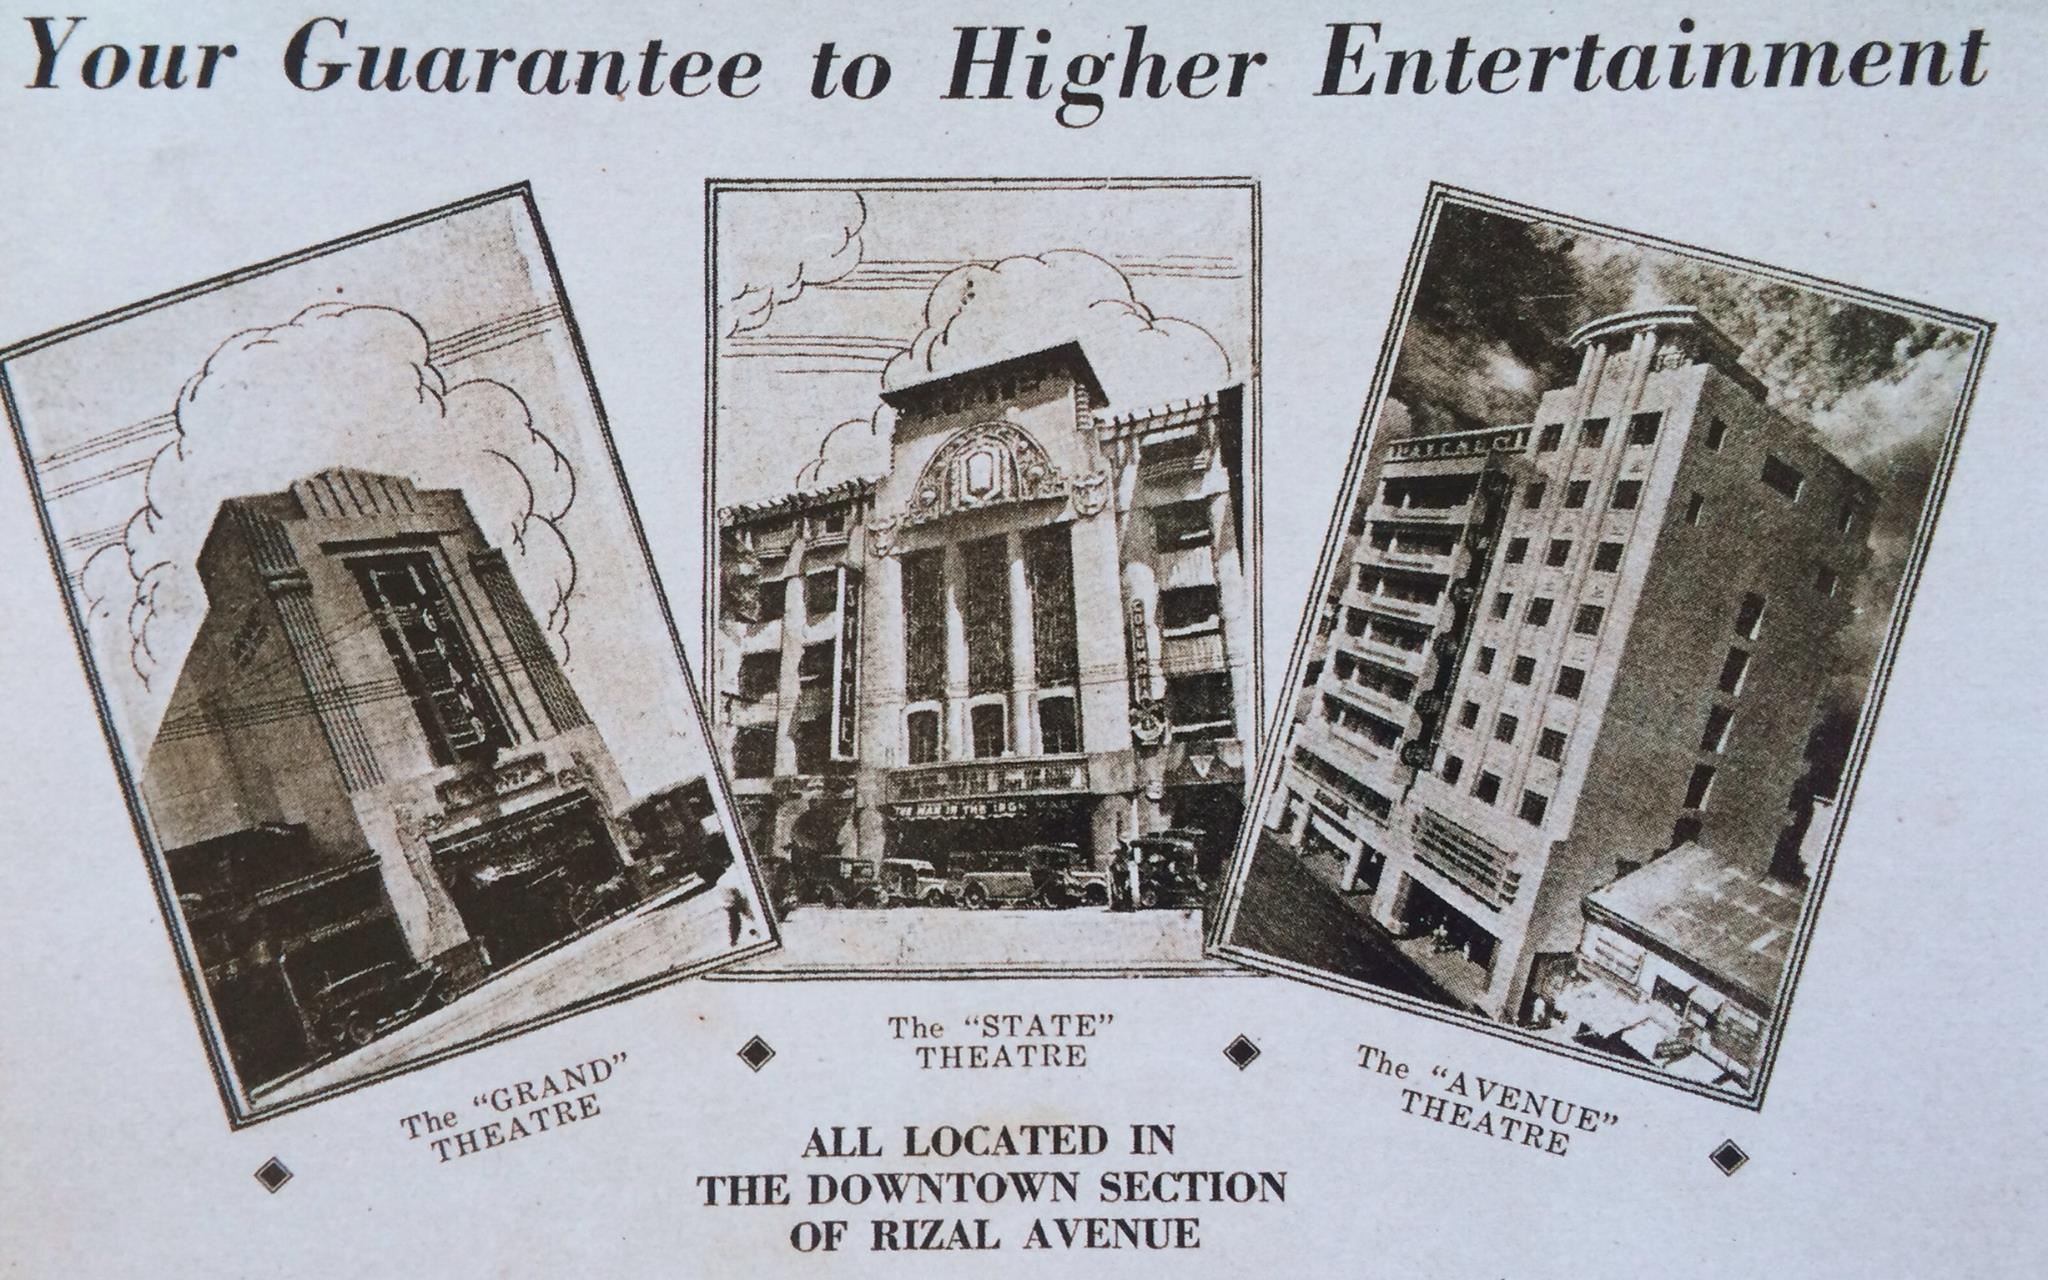 Grand-State-Avenue Theaters ad